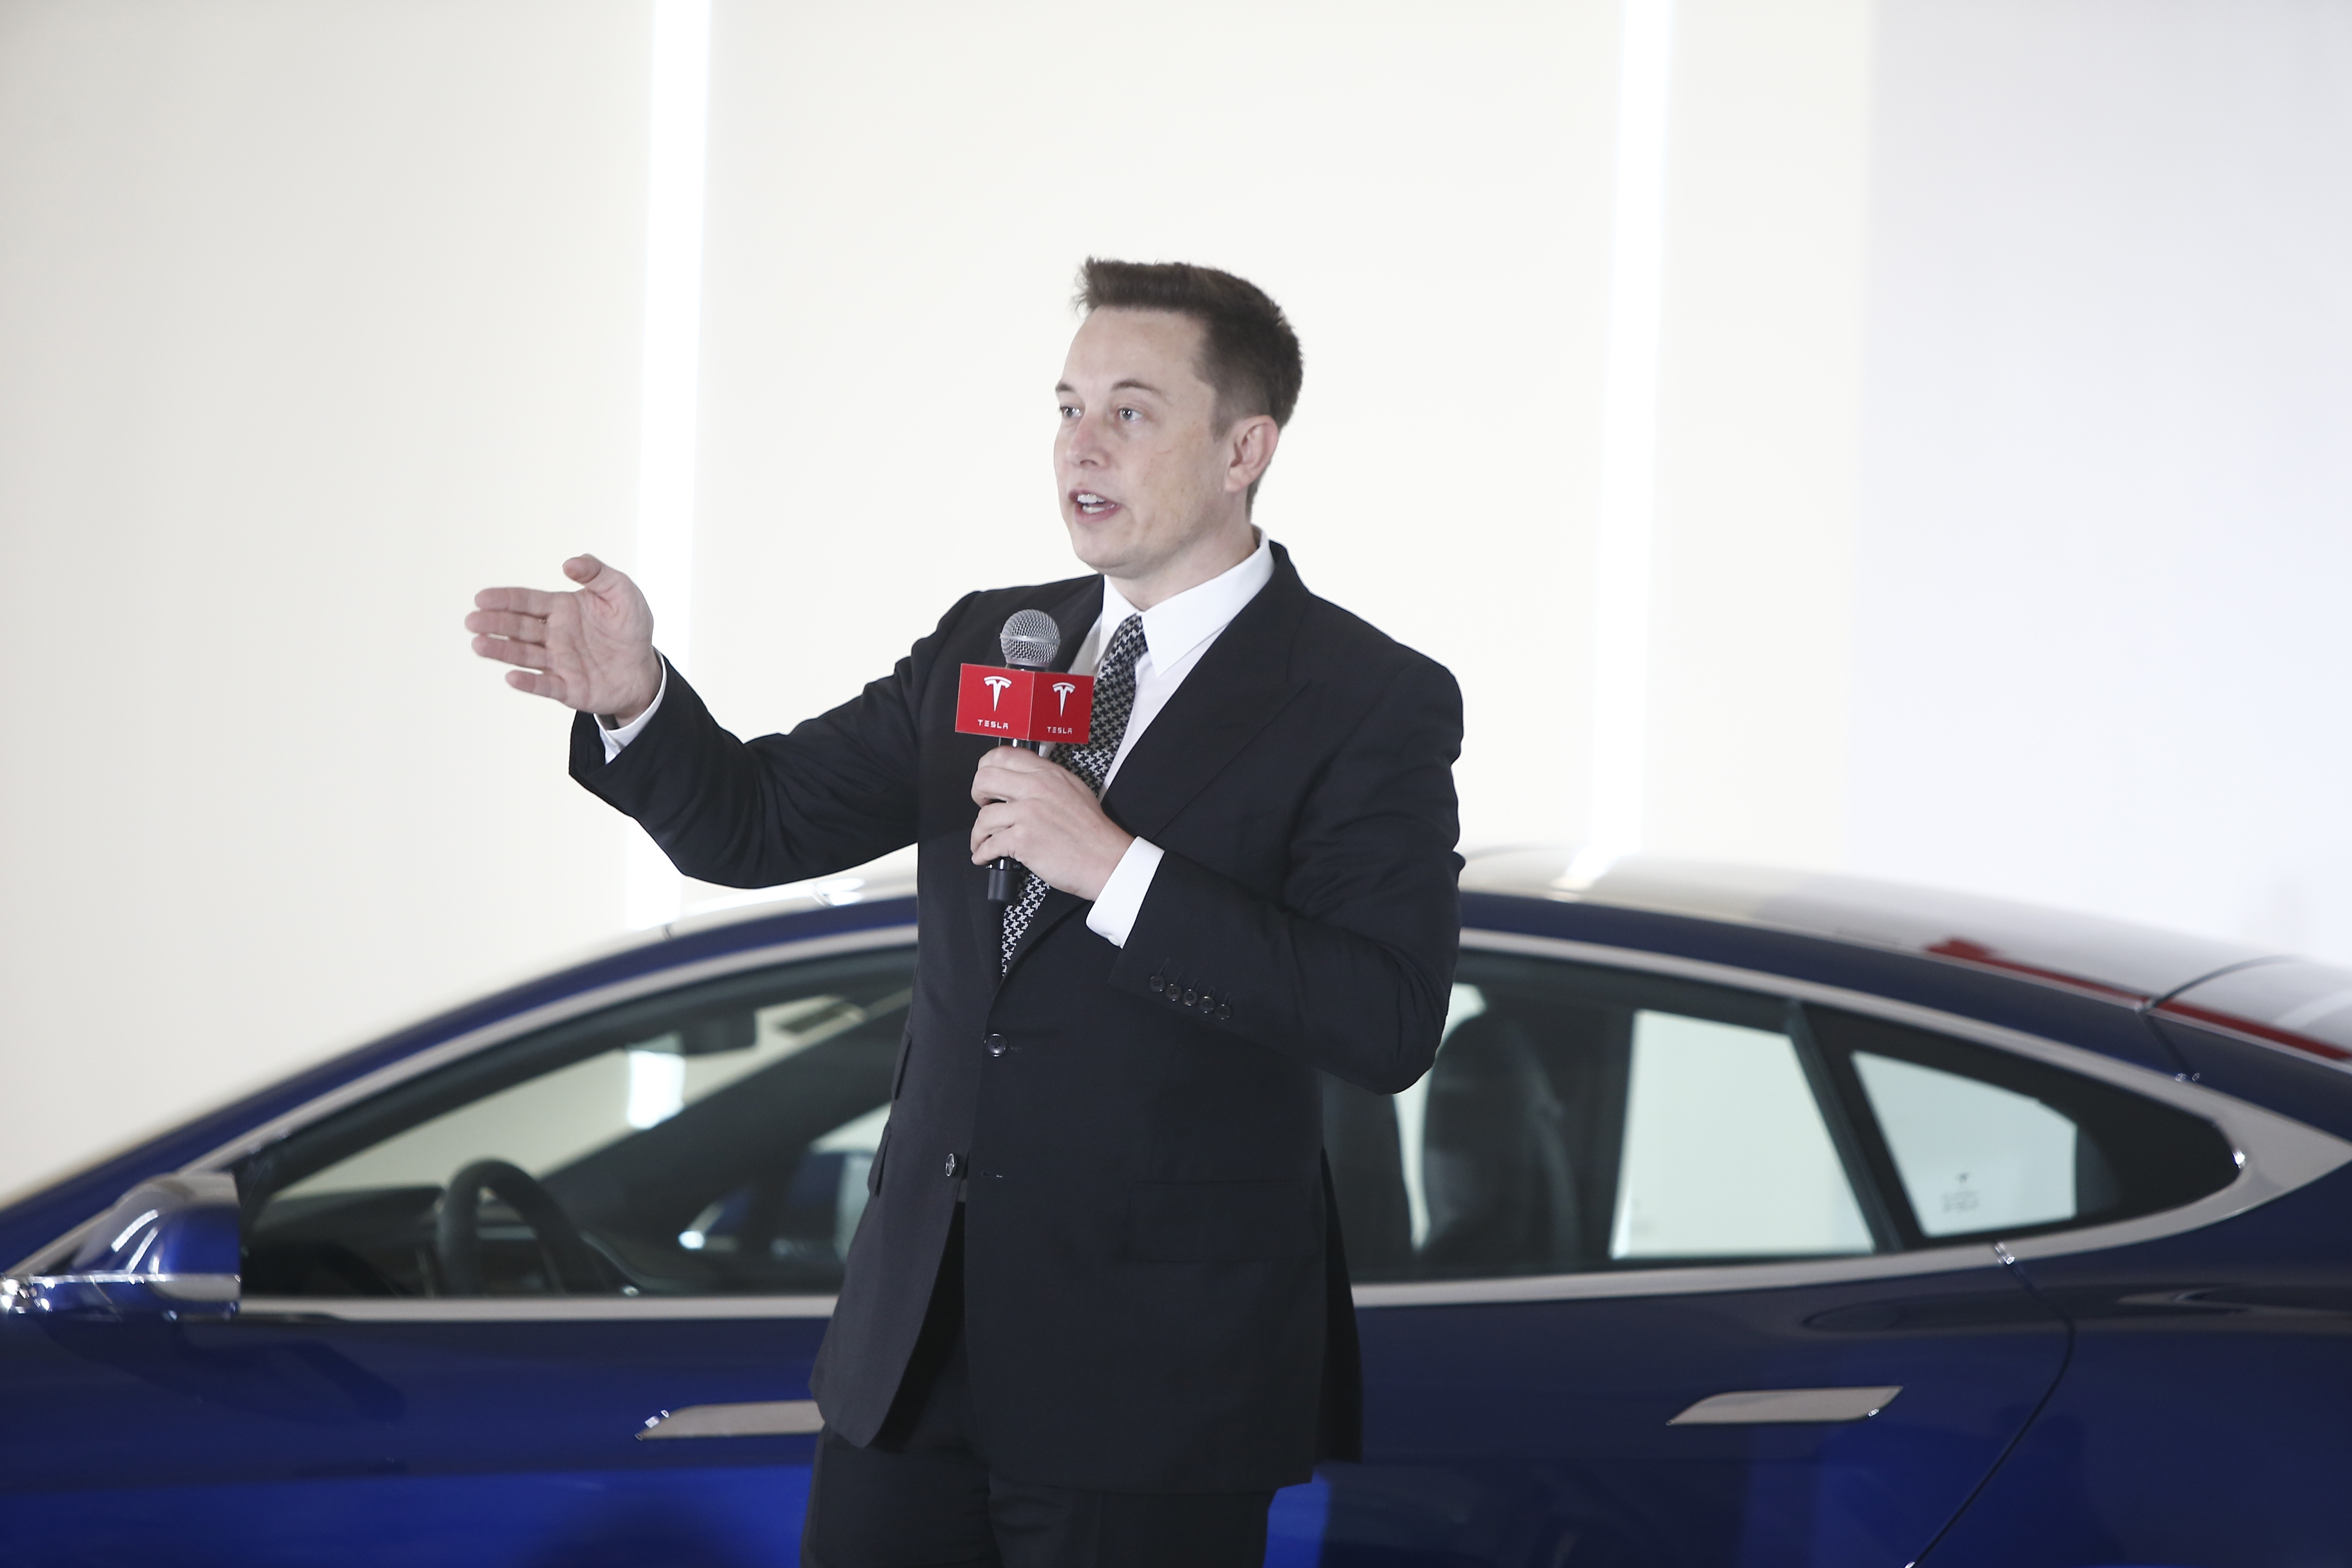 Google chrome themes game of thrones - 7 Things We Learned From Elon Musk S Tesla Shareholder Meeting Including New Product Teases And An Explanation For His Erratic Twitter Usage